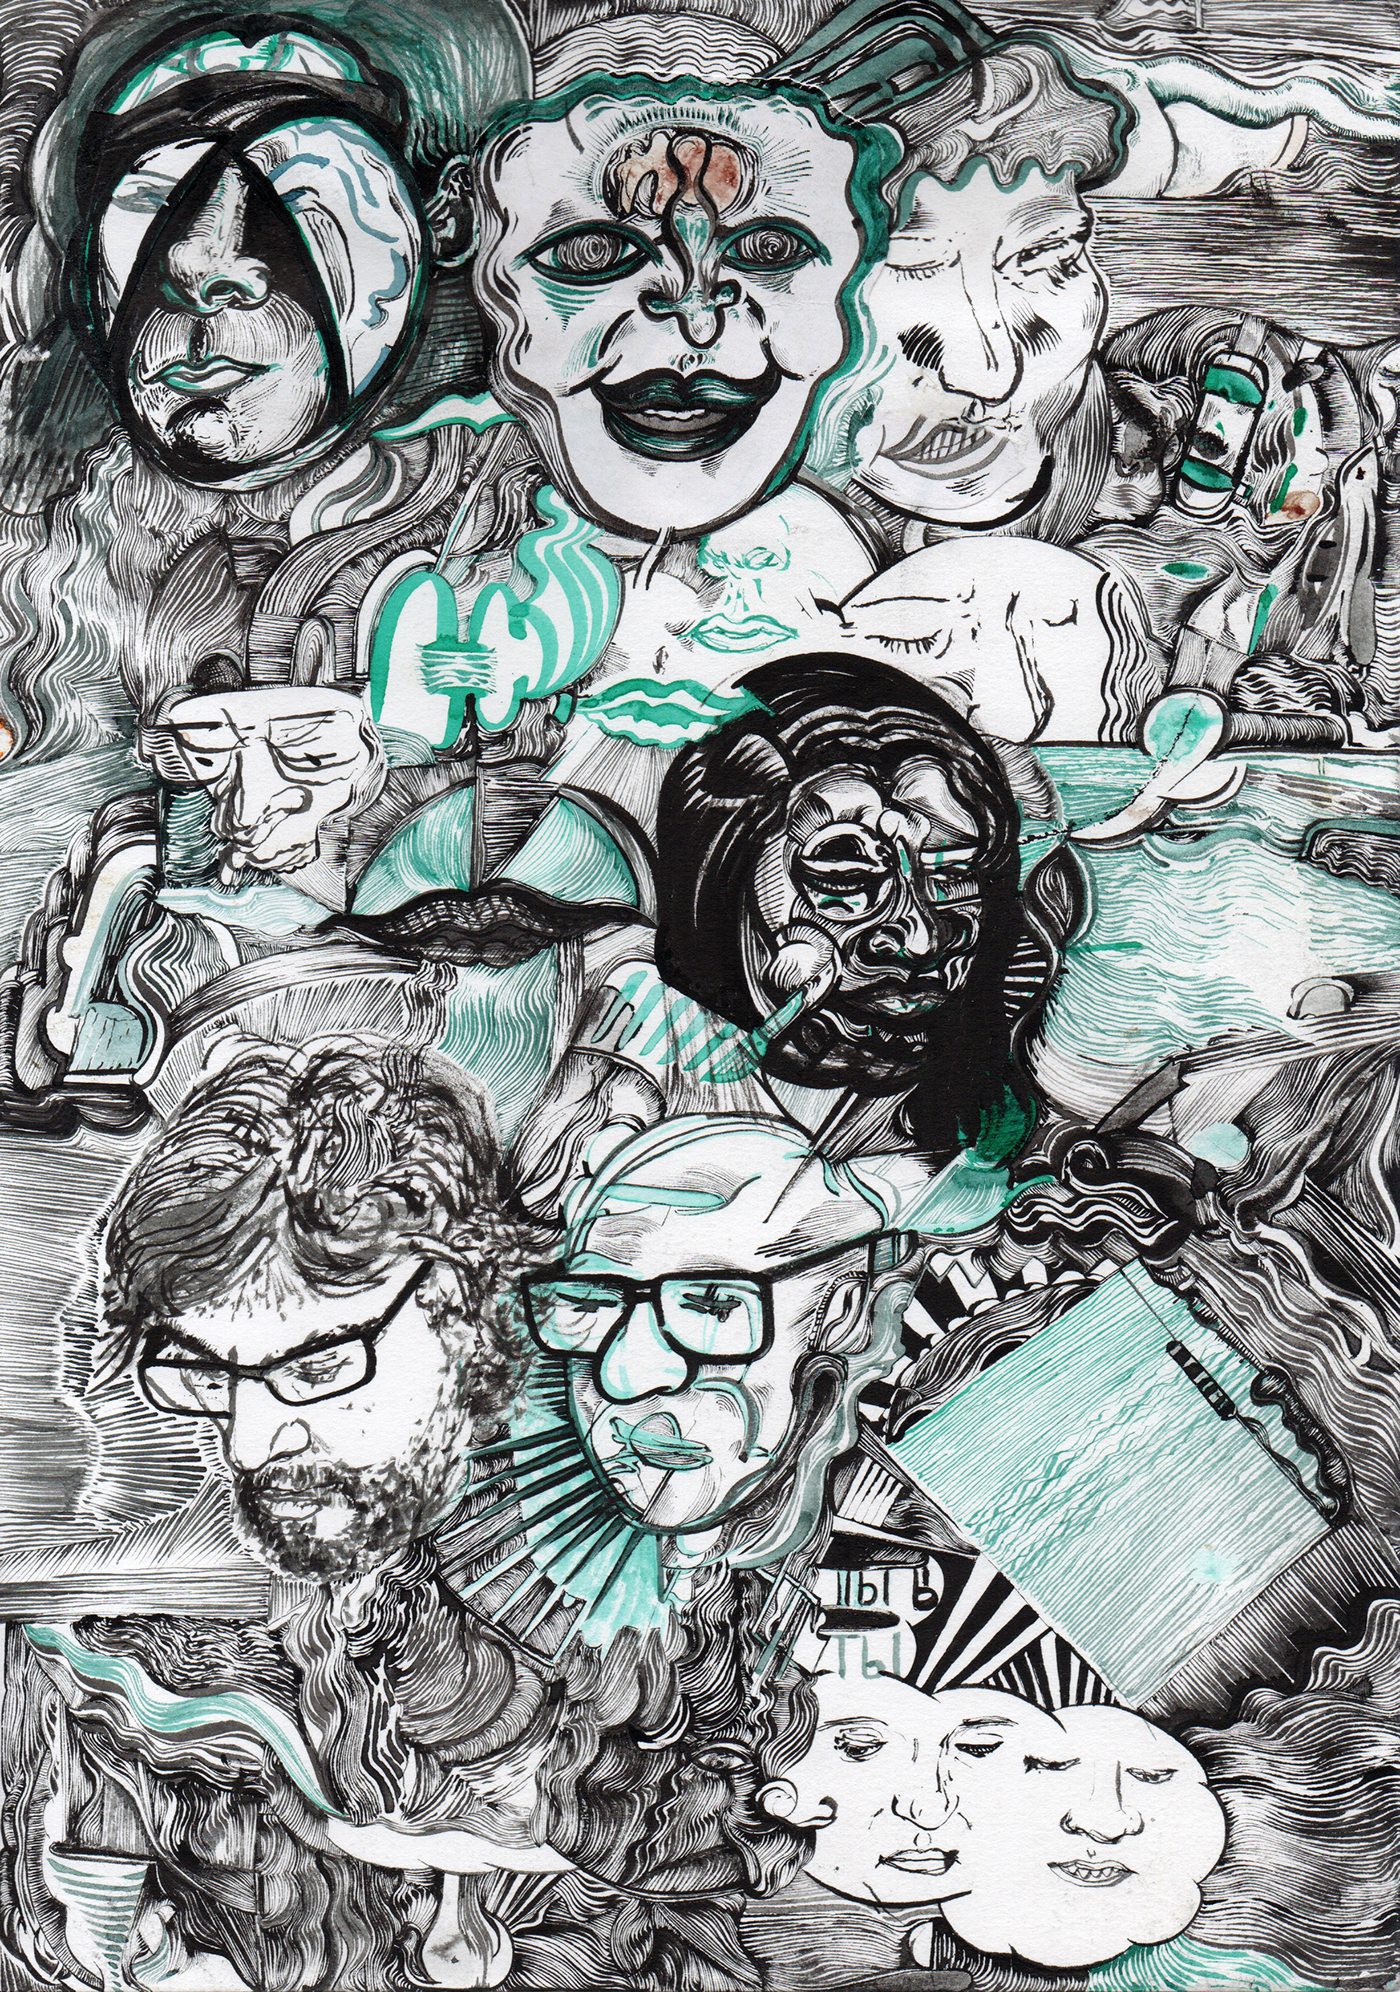 faces, ink drawing, sea of faces, black and teal